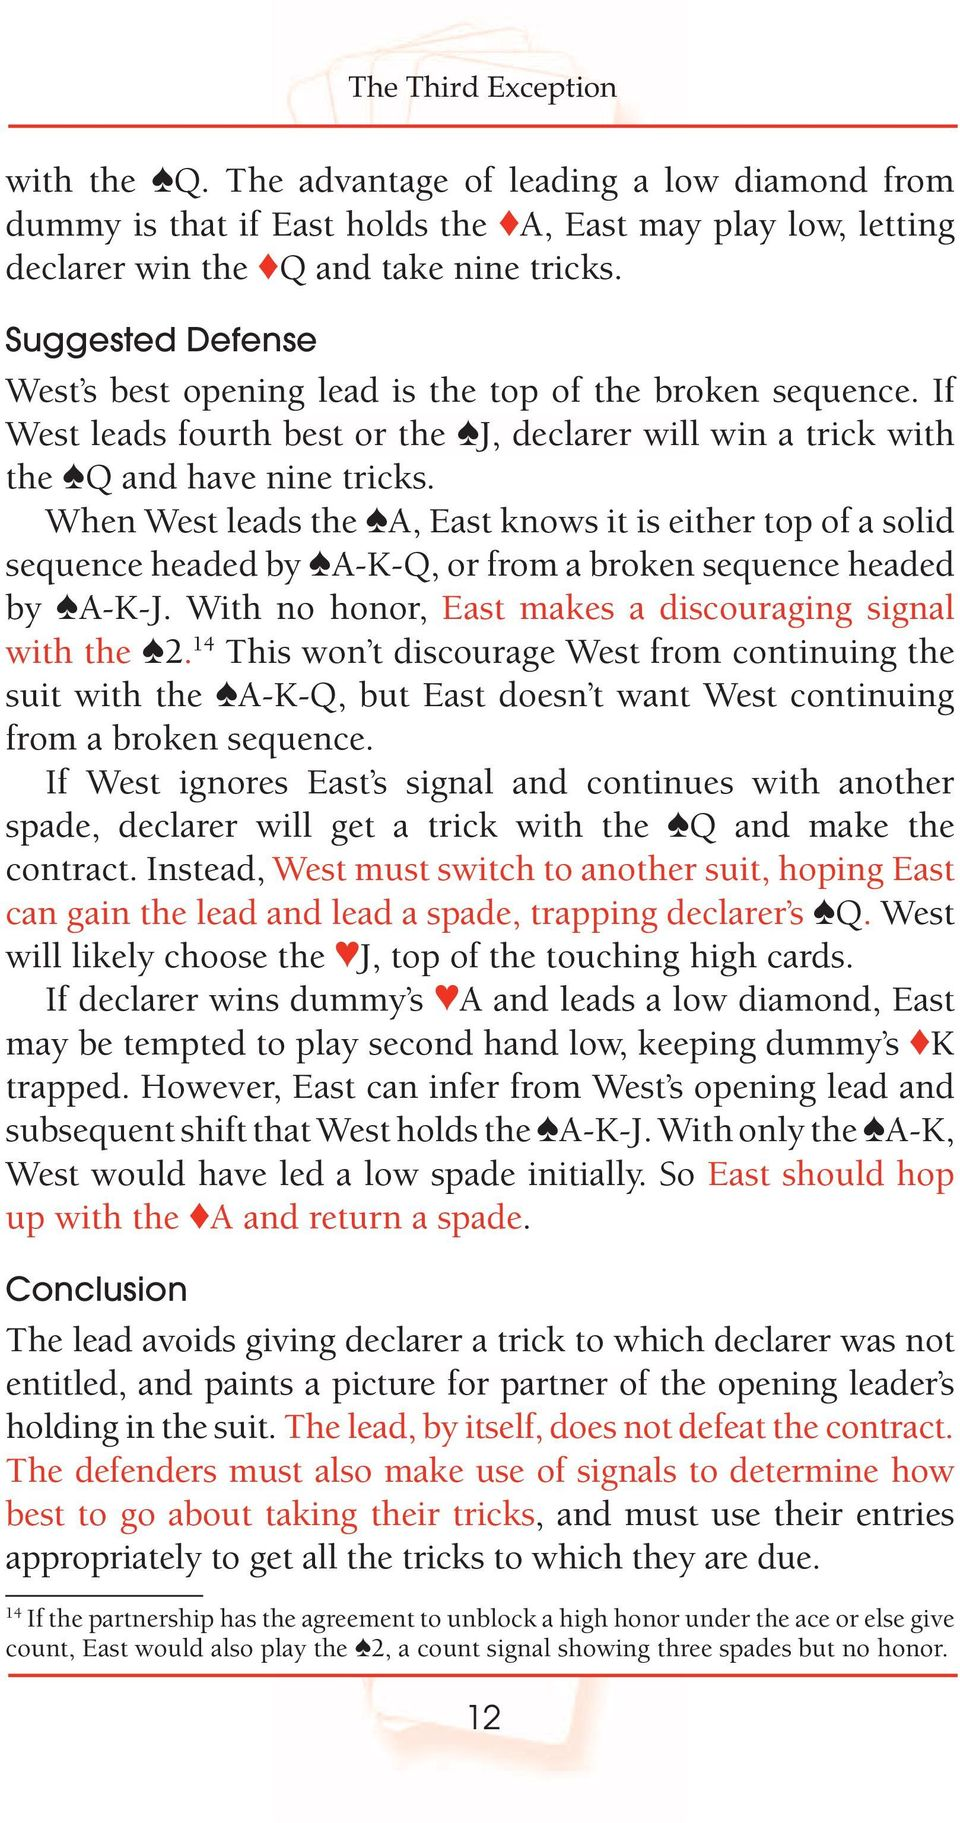 When West leads the A, East knows it is either top of a solid sequence headed by A-K-Q, or from a broken sequence headed by A-K-J. With no honor, East makes a discouraging signal with the 2.